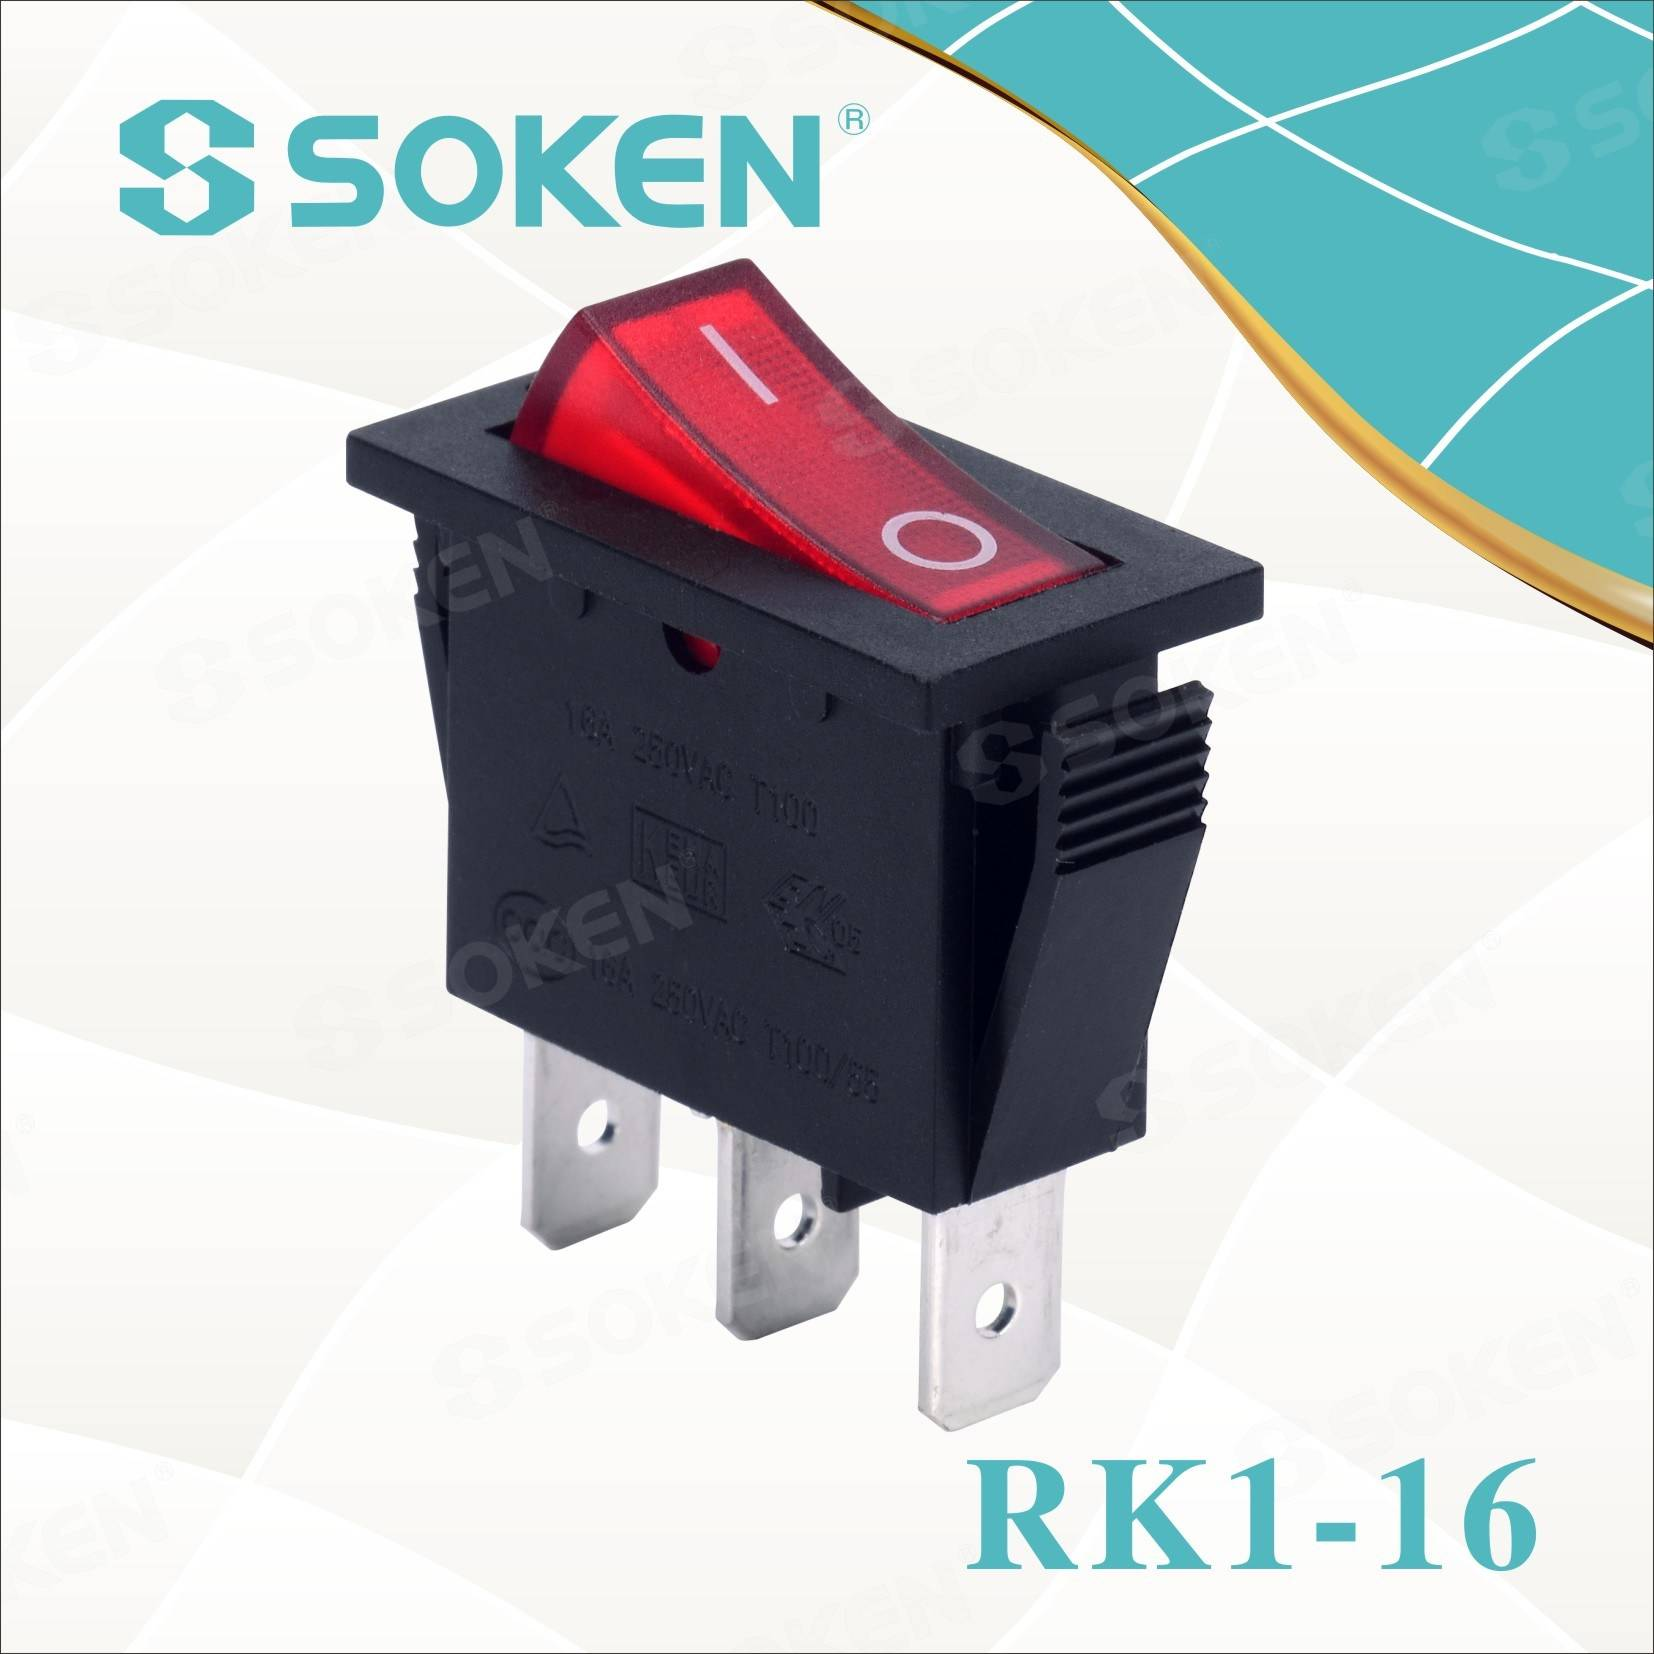 Soken Rk1-16 1X1n B/R on off Rocker Switch